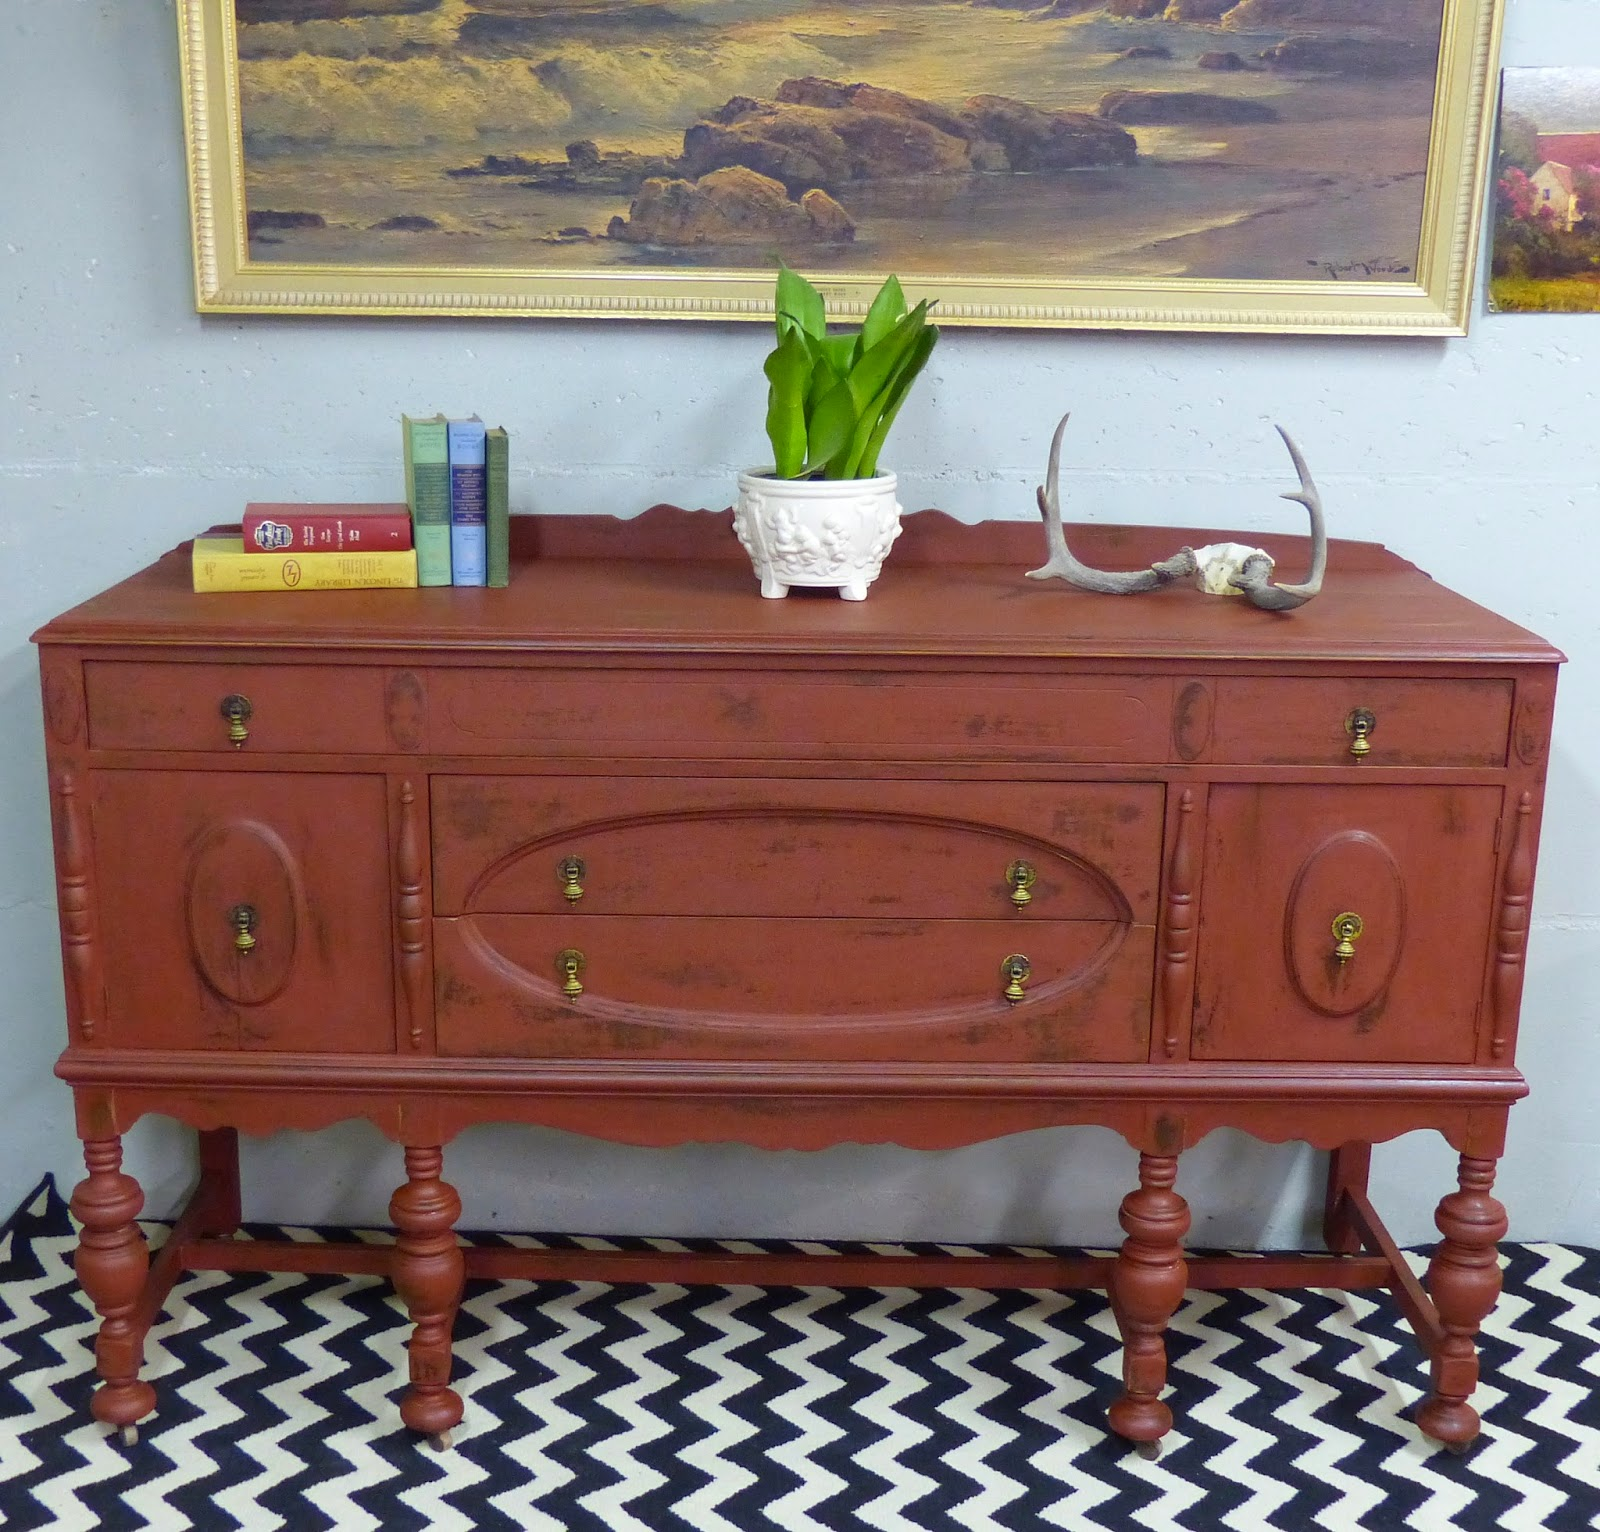 Old Fashioned Furniture For Sale: Simple Redesign: OLD FASHIONED MILK PAINT